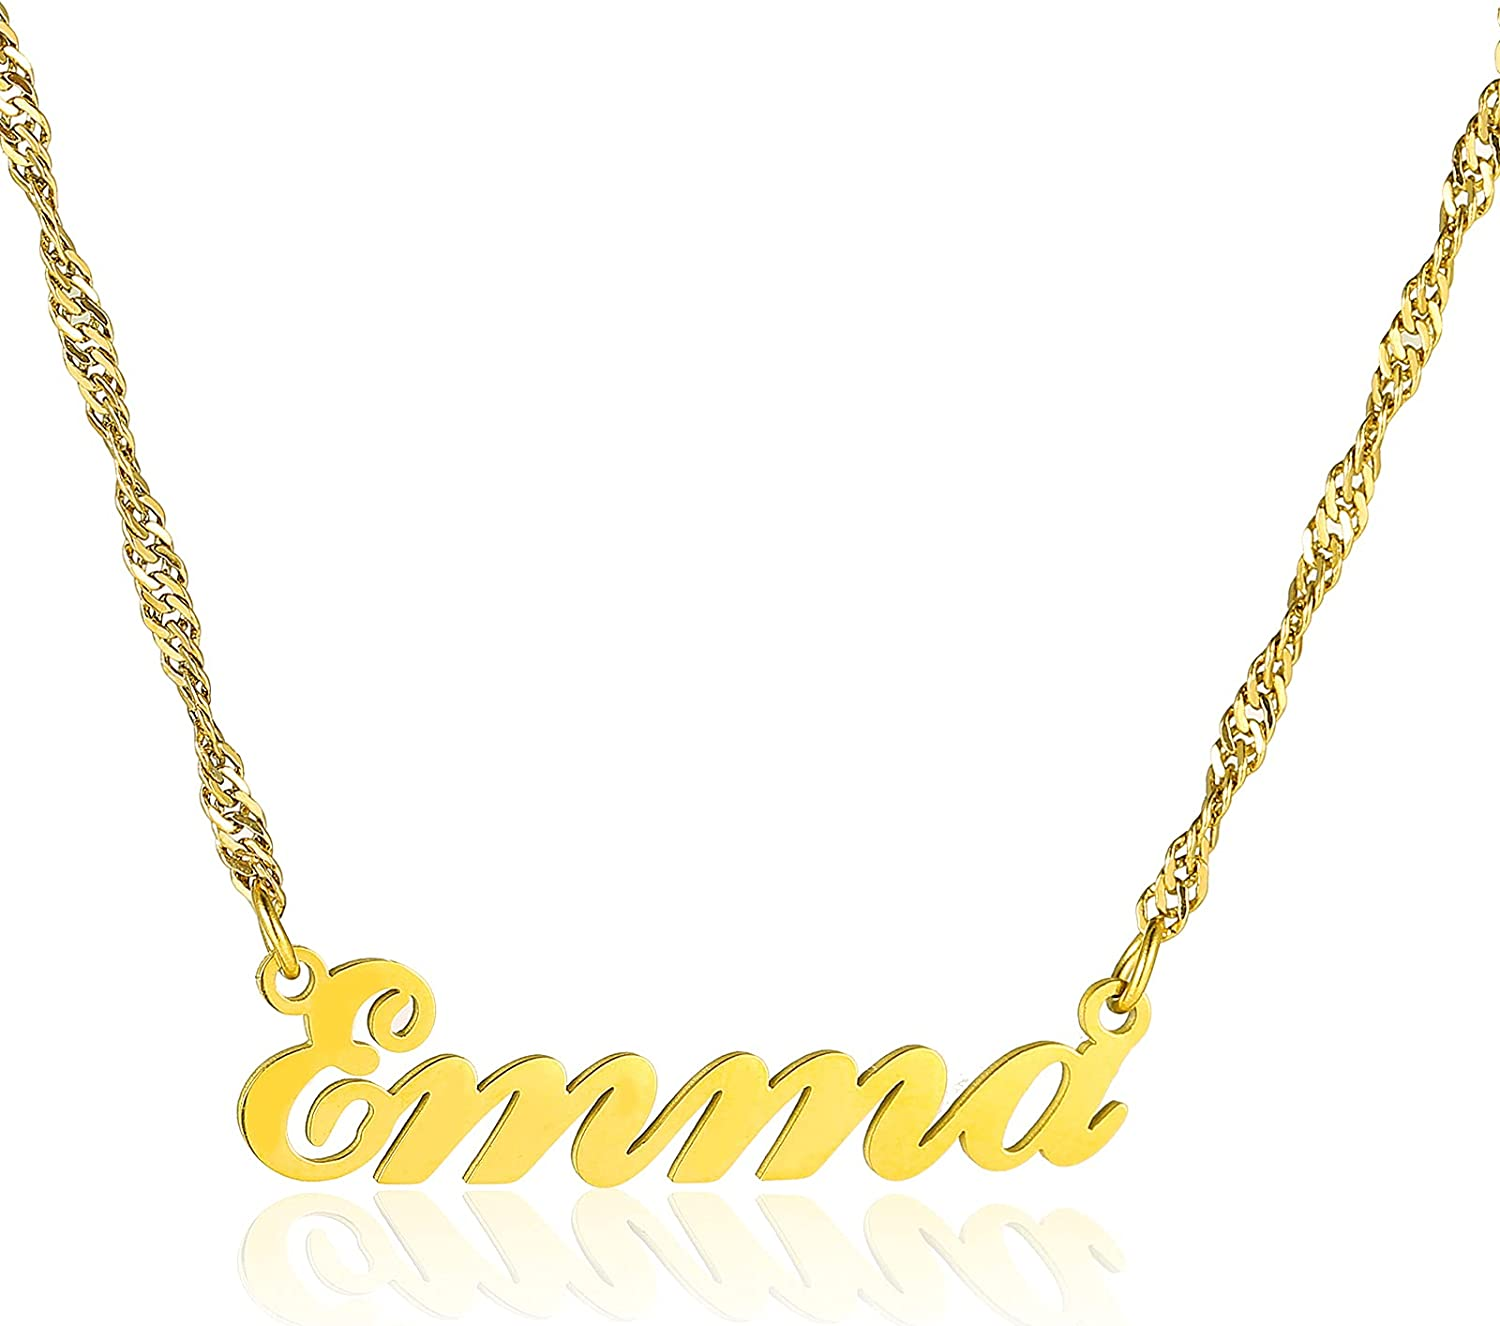 Beunique Custom Name Necklace for Women Christmas Gift Personalized Necklace with Name Customized Nameplate Pendant Necklace with Paperclip Chain Chain Jewelry